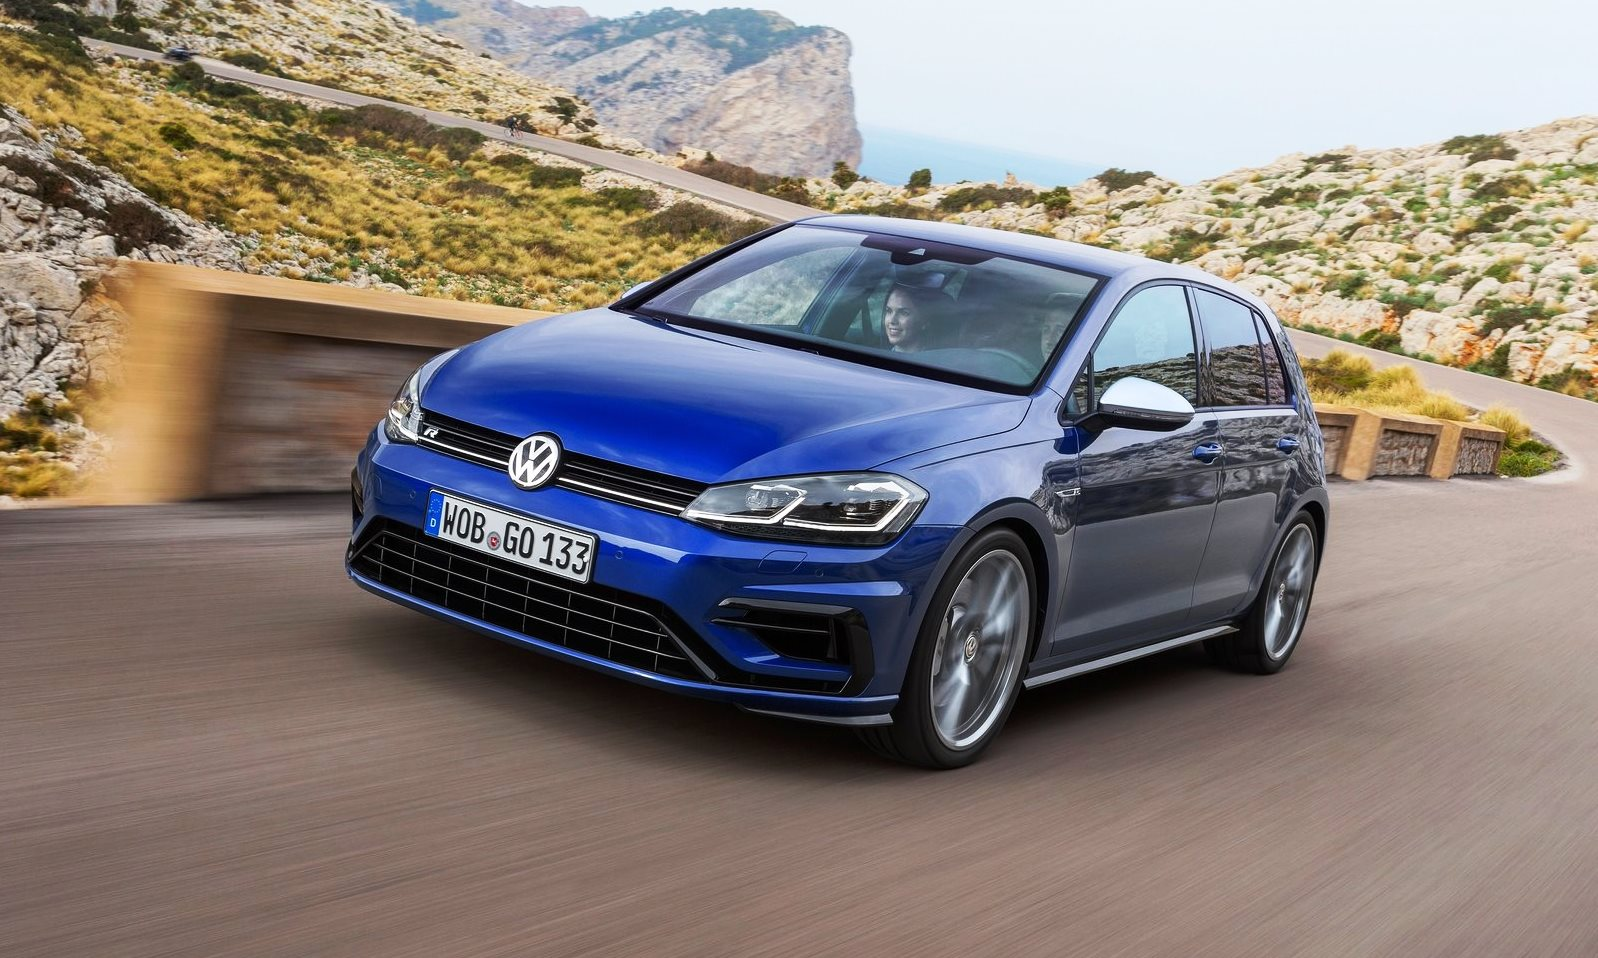 VW Golf VII R DSG (2017) - Double Apex